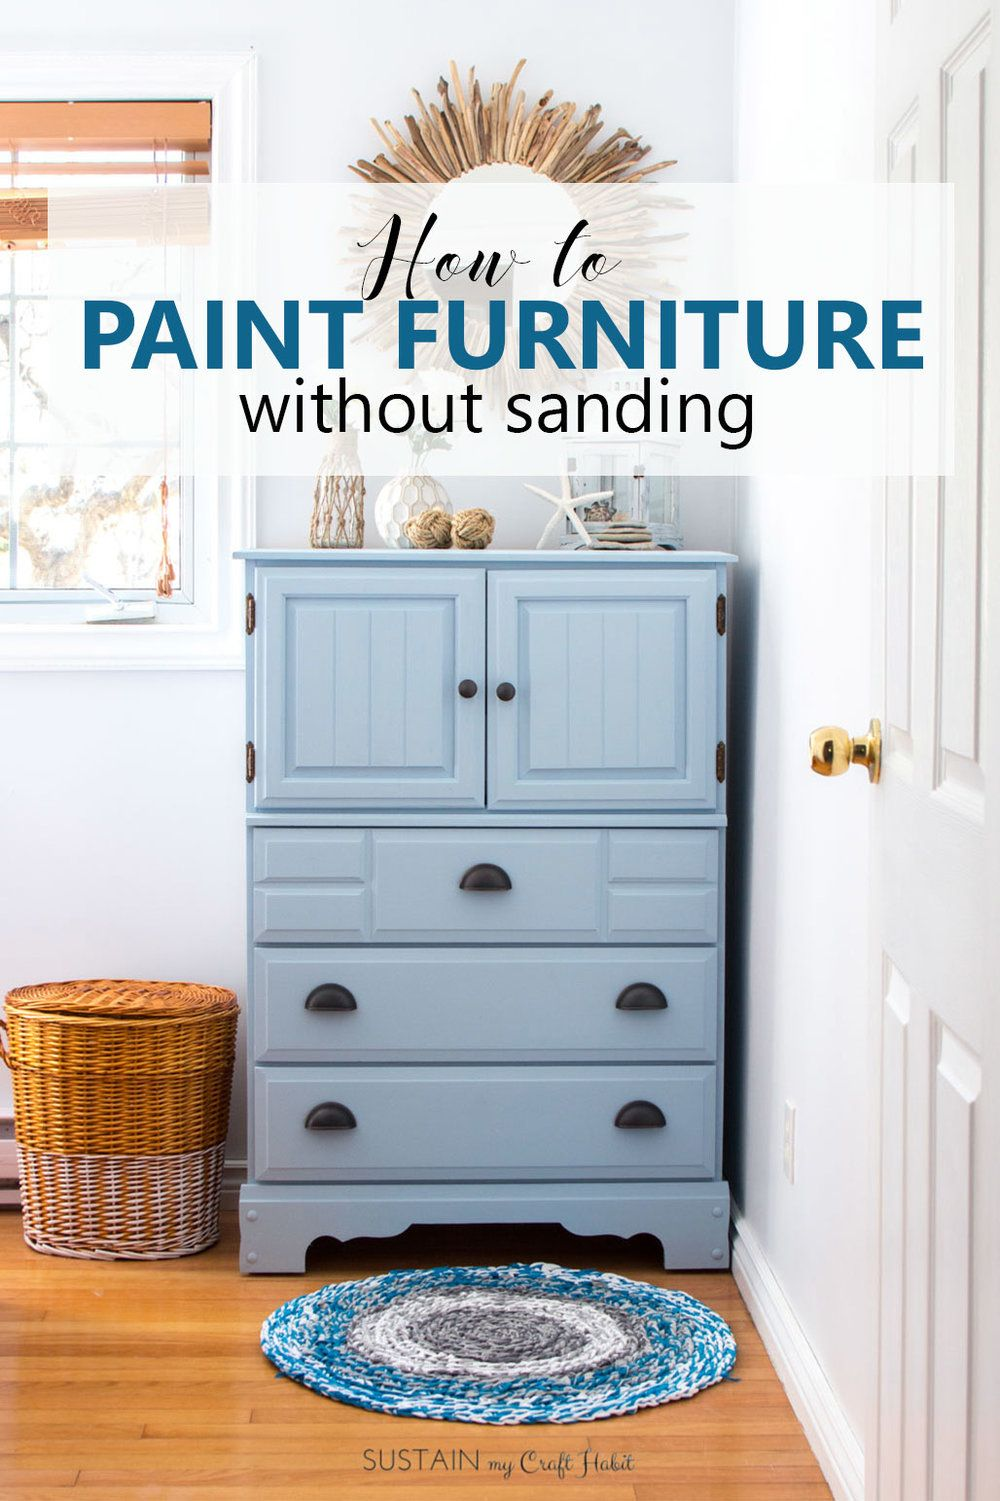 Am going to paint all my furniture now  This tutorial on how to paint  furniture without sanding makes furniture upcycling look so easy. Am going to paint all my furniture now  This tutorial on how to